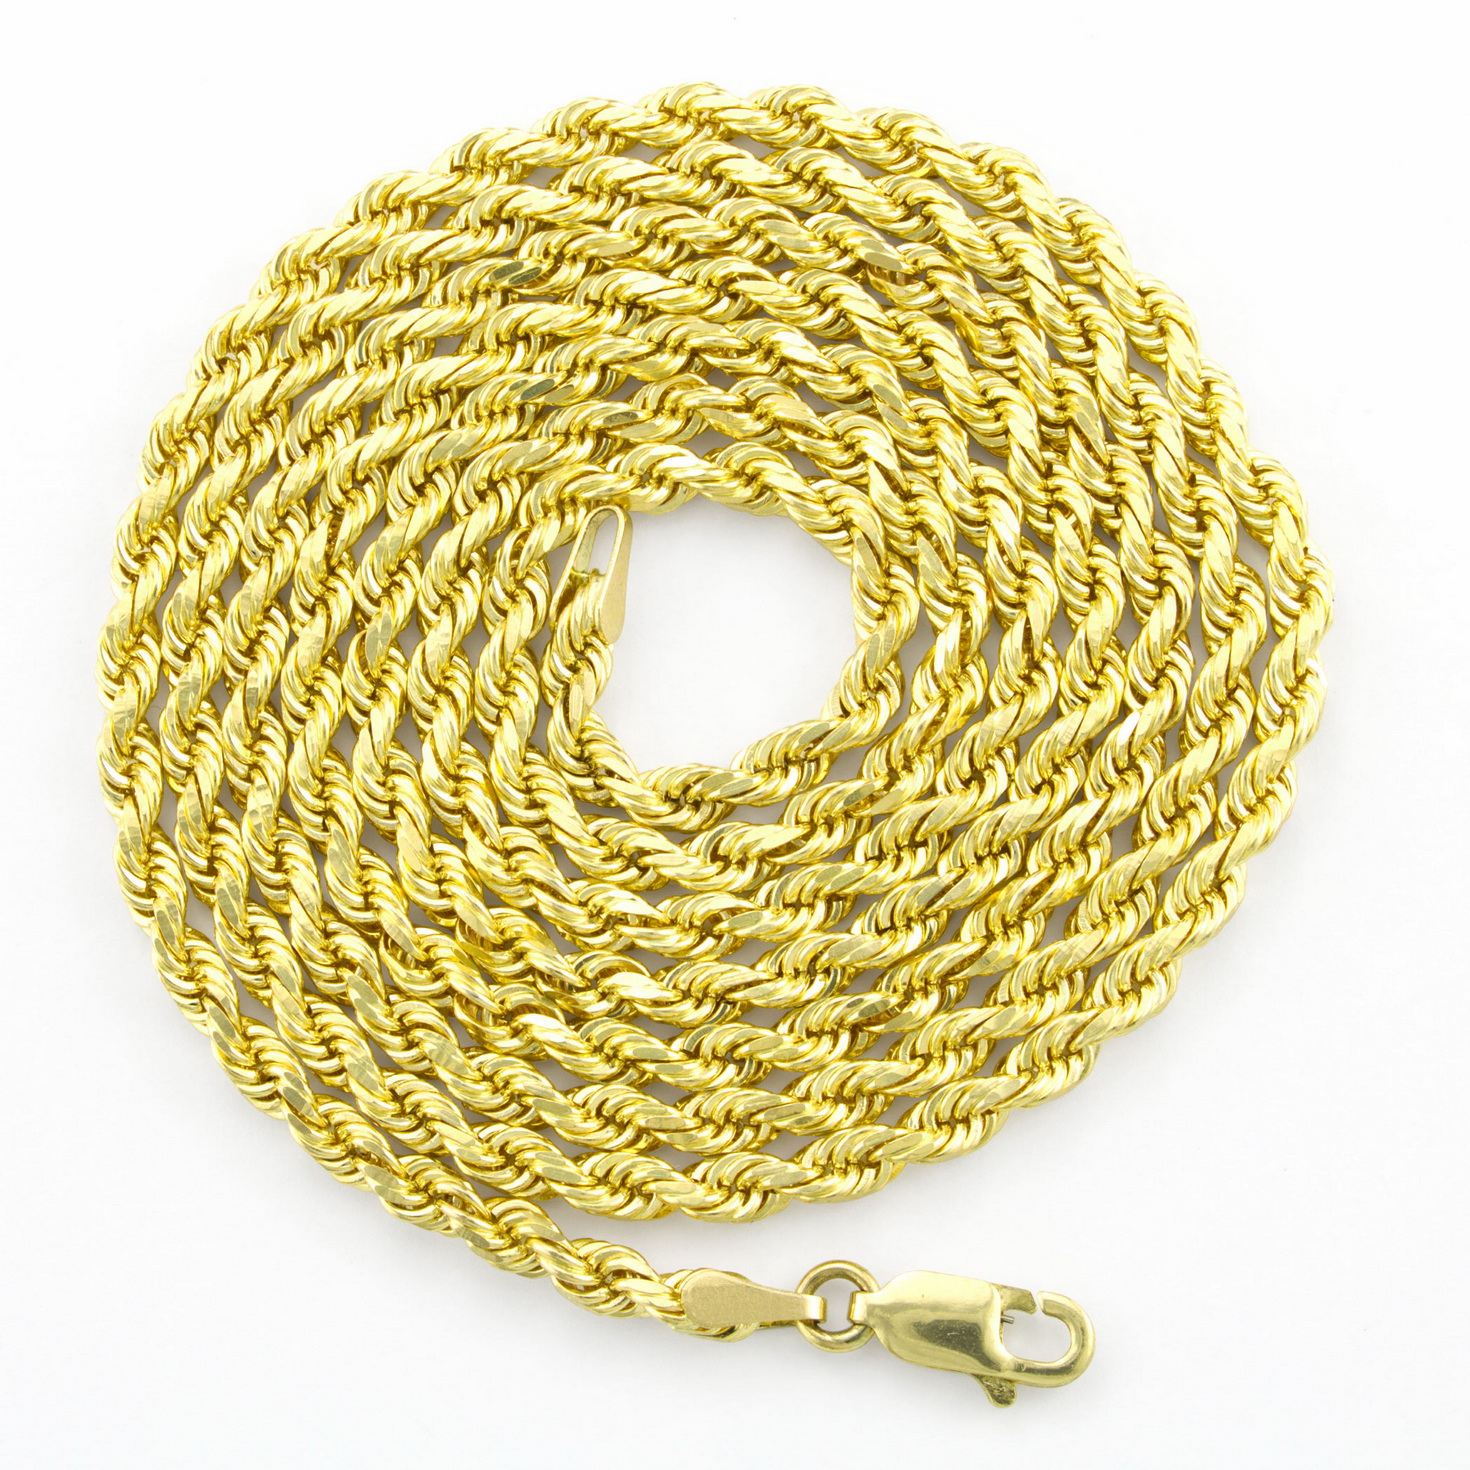 Real-14K-Yellow-Gold-3mm-Diamond-Cut-Rope-Chain-Necklace-Lobster-Clasp-18-034-30-034 thumbnail 18